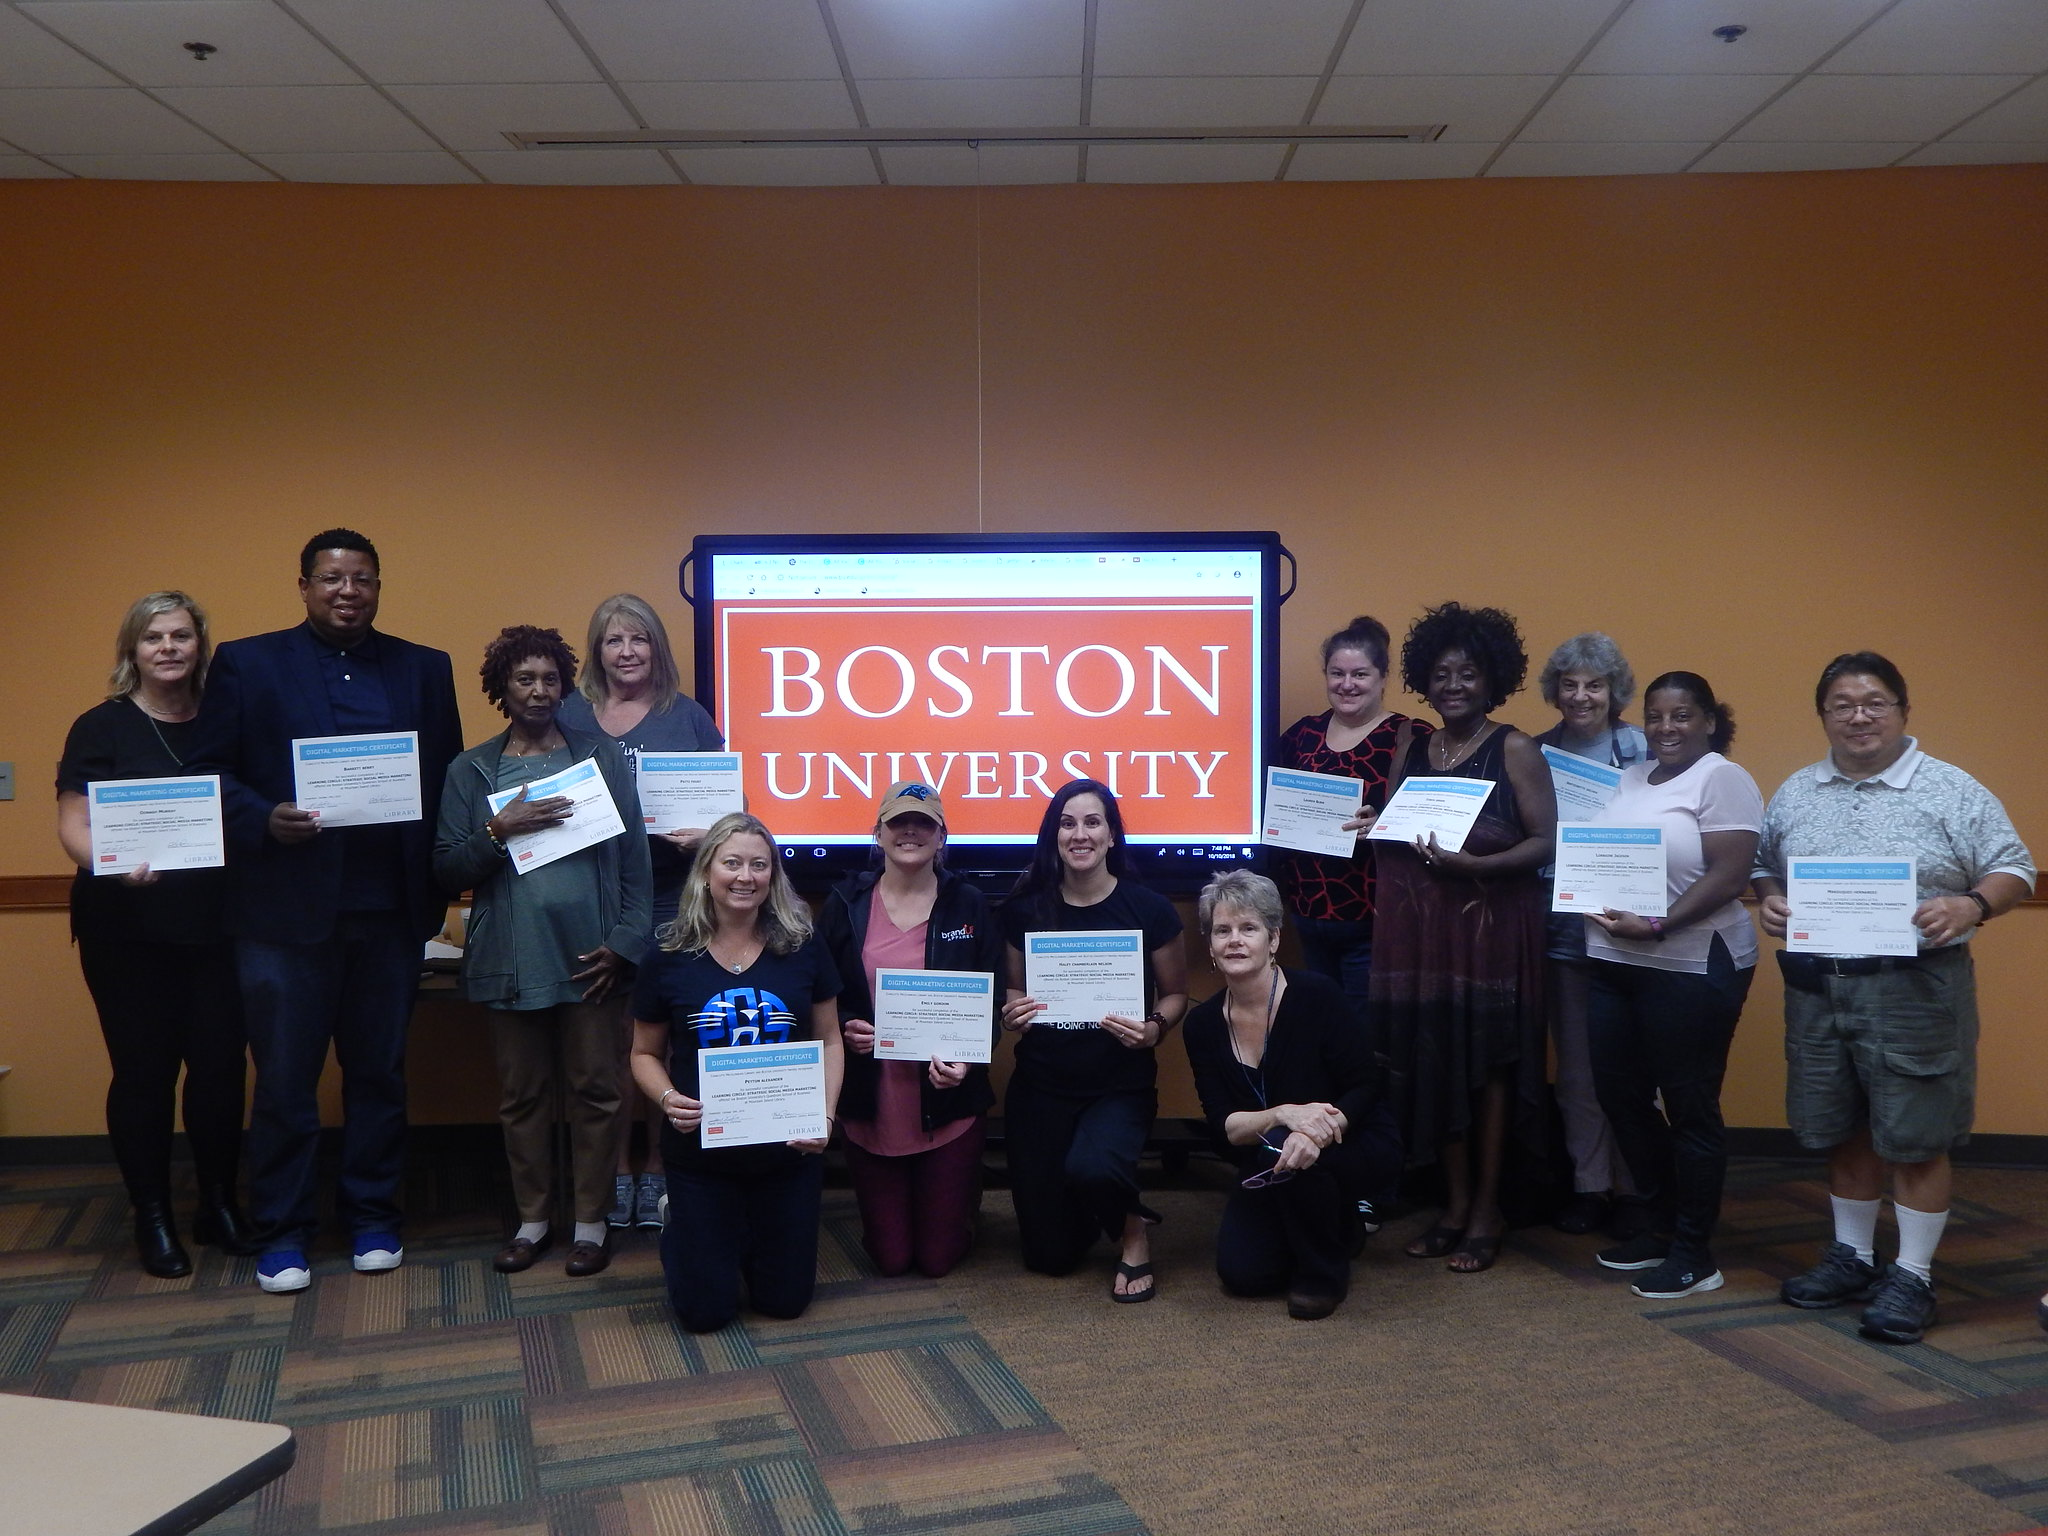 Here is a photo of a learning circle graduation